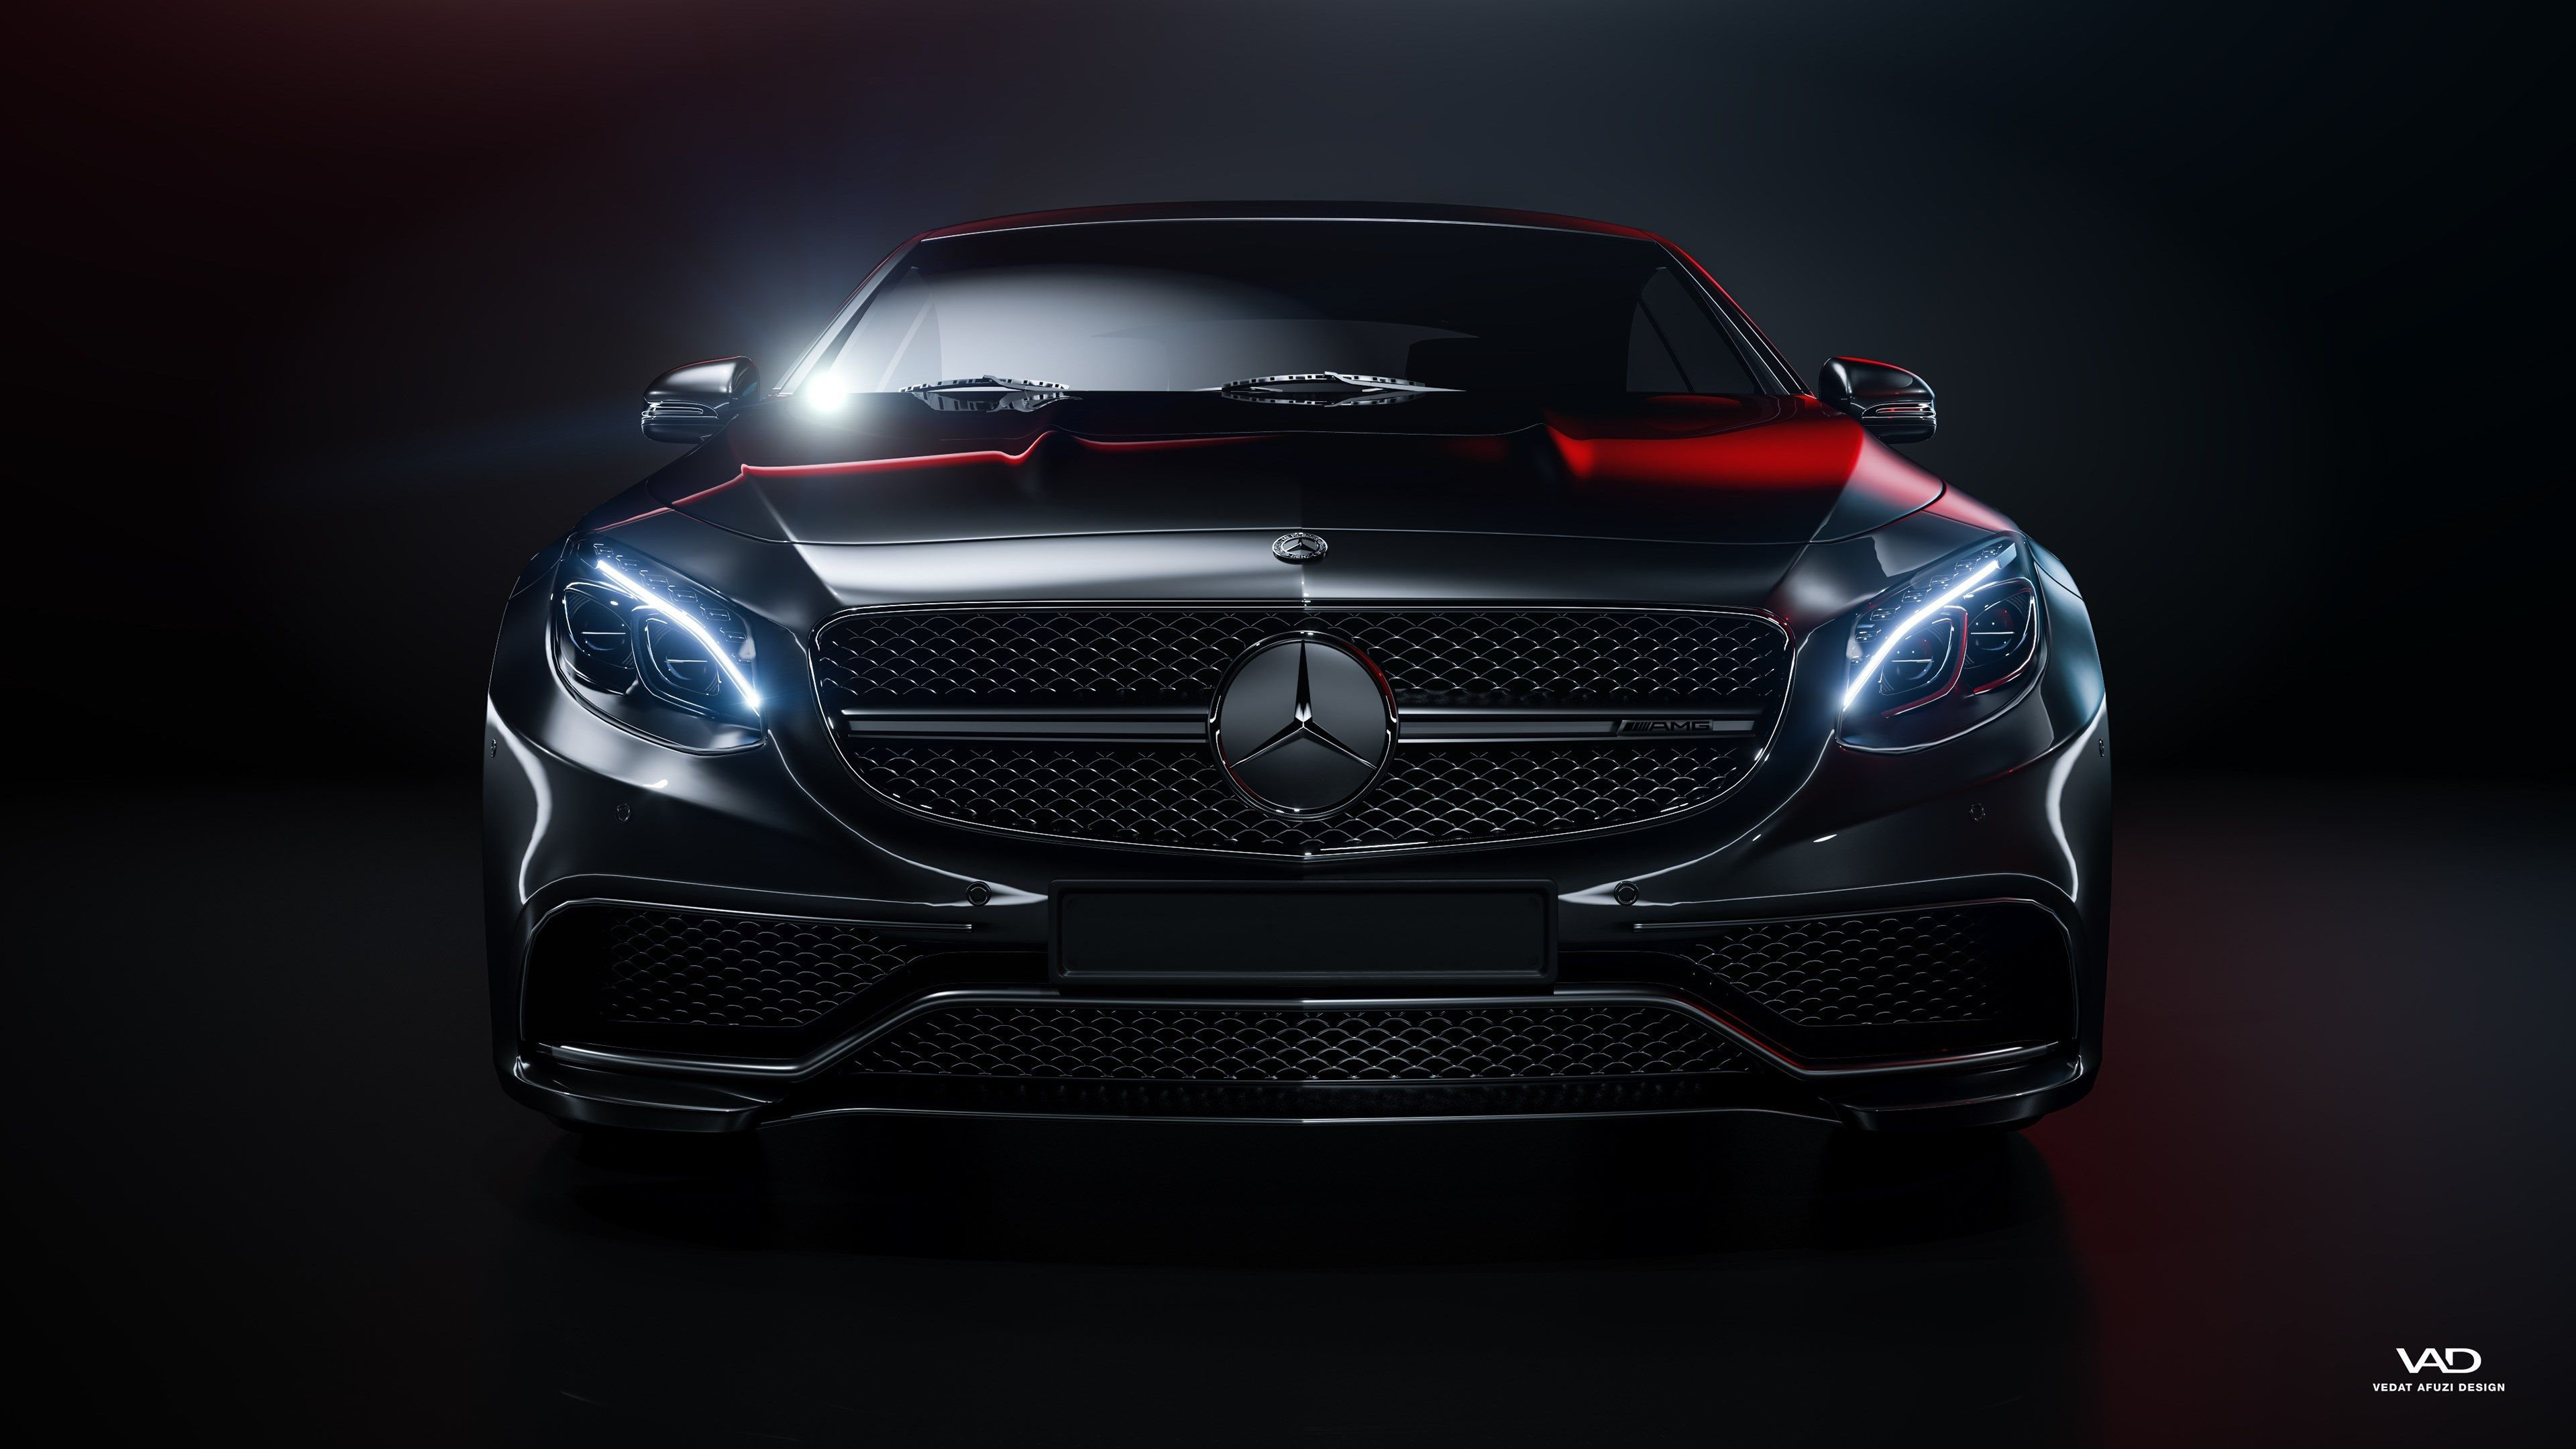 3840x2160 Mercedes Benz S63 Amg 4k Hd Wallpaper Free Download For